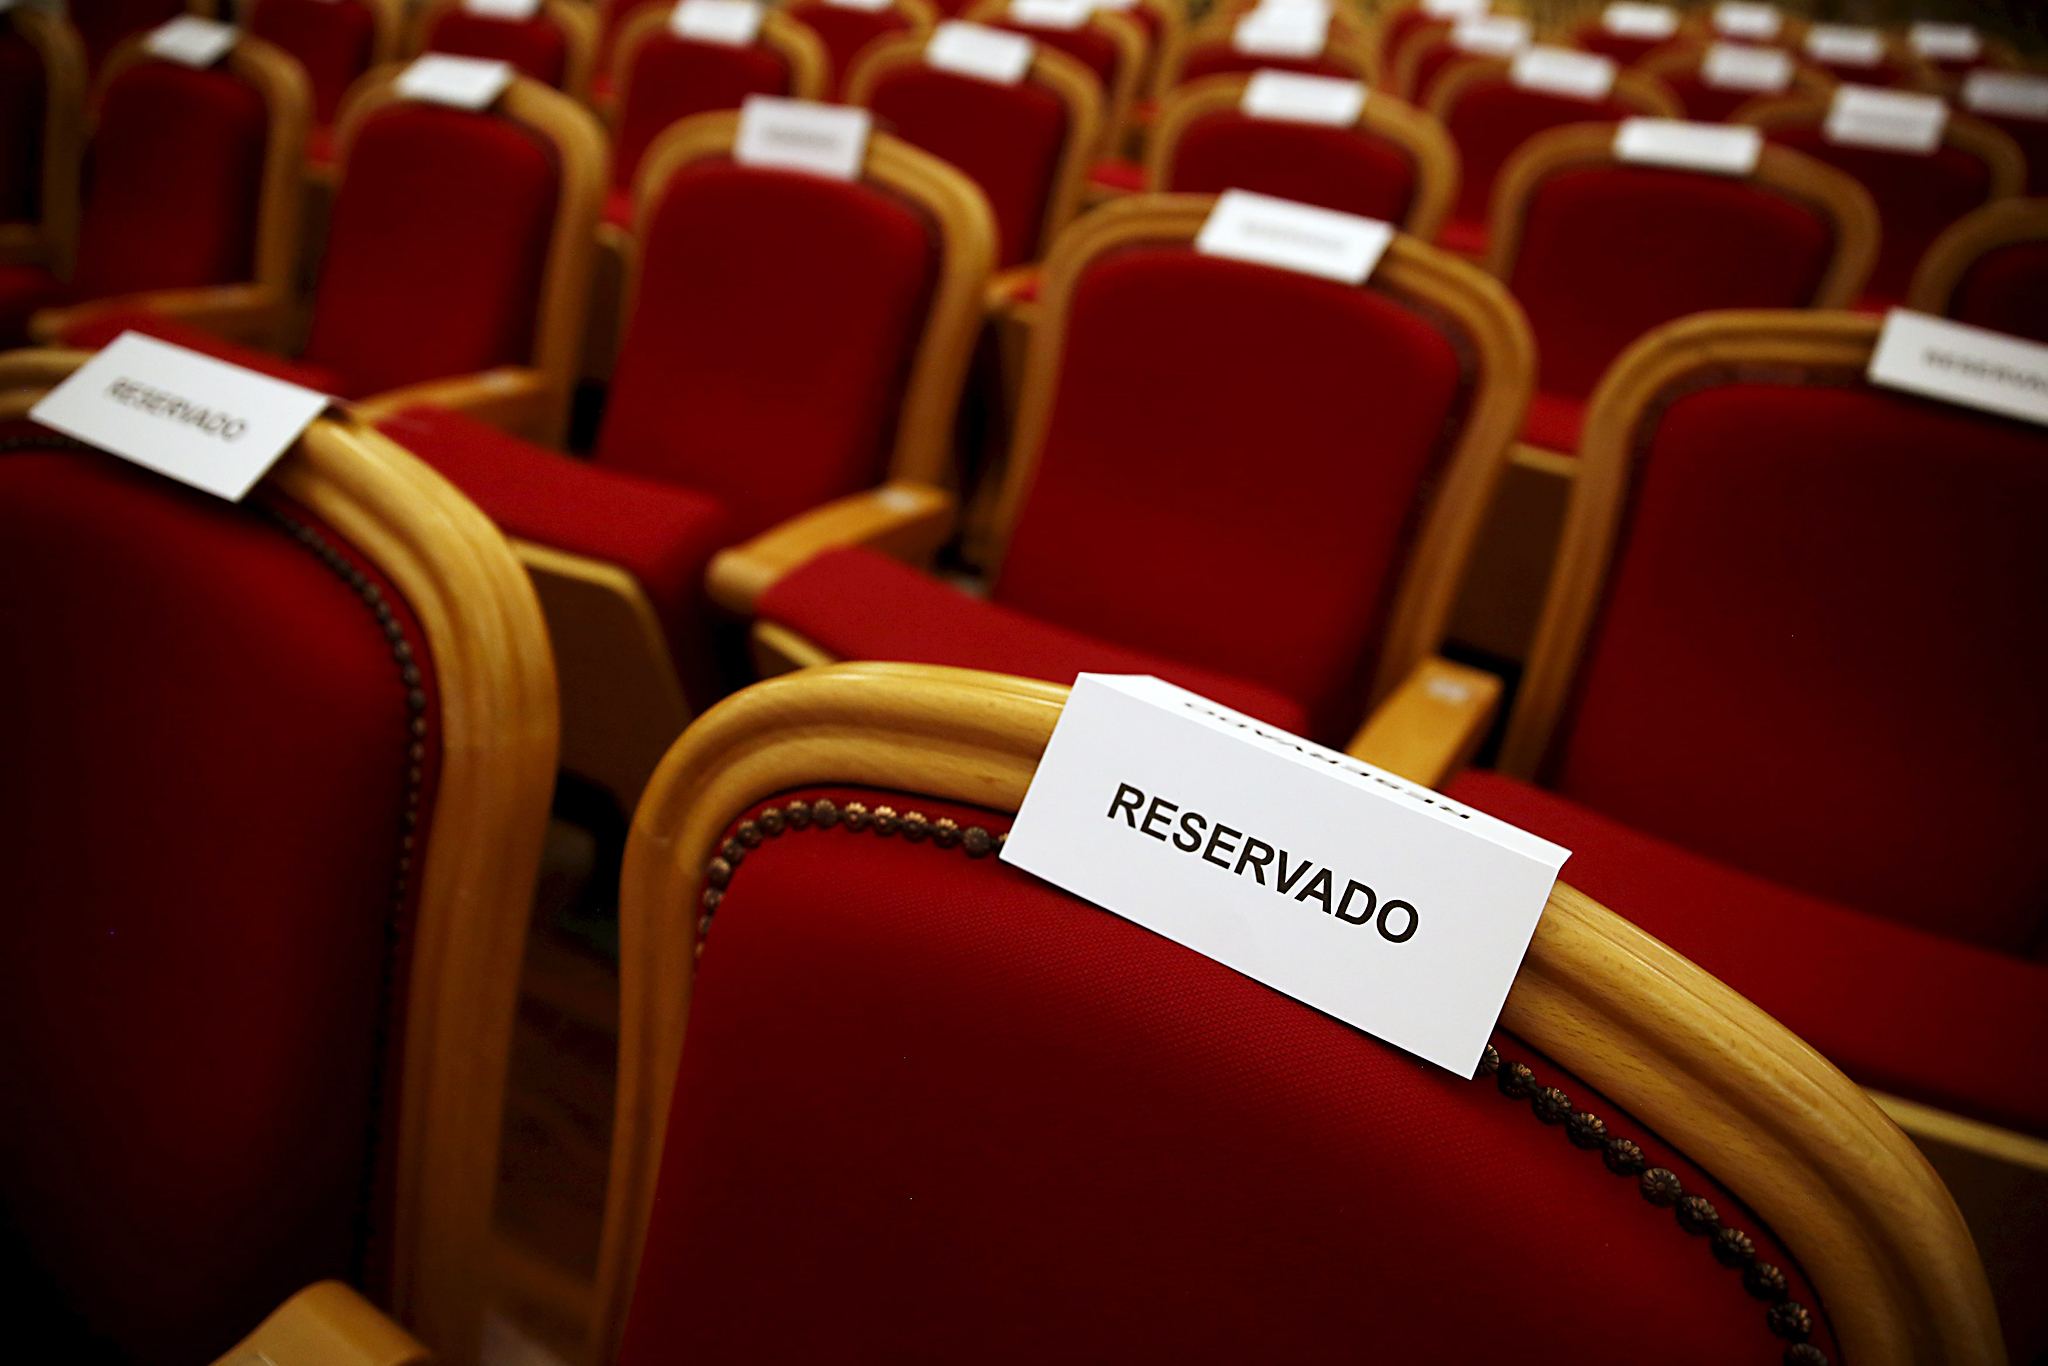 Reserved seating awaits attendees of Obama's address to the Cuban people at the Gran Teatro de la Habana Alicia Alonso in Havana...Reserved seating awaits attendees of U.S. President Barack Obama's address to the Cuban people at the Gran Teatro de la Habana Alicia Alonso in Havana March 22, 2016. REUTERS/Jonathan Ernst